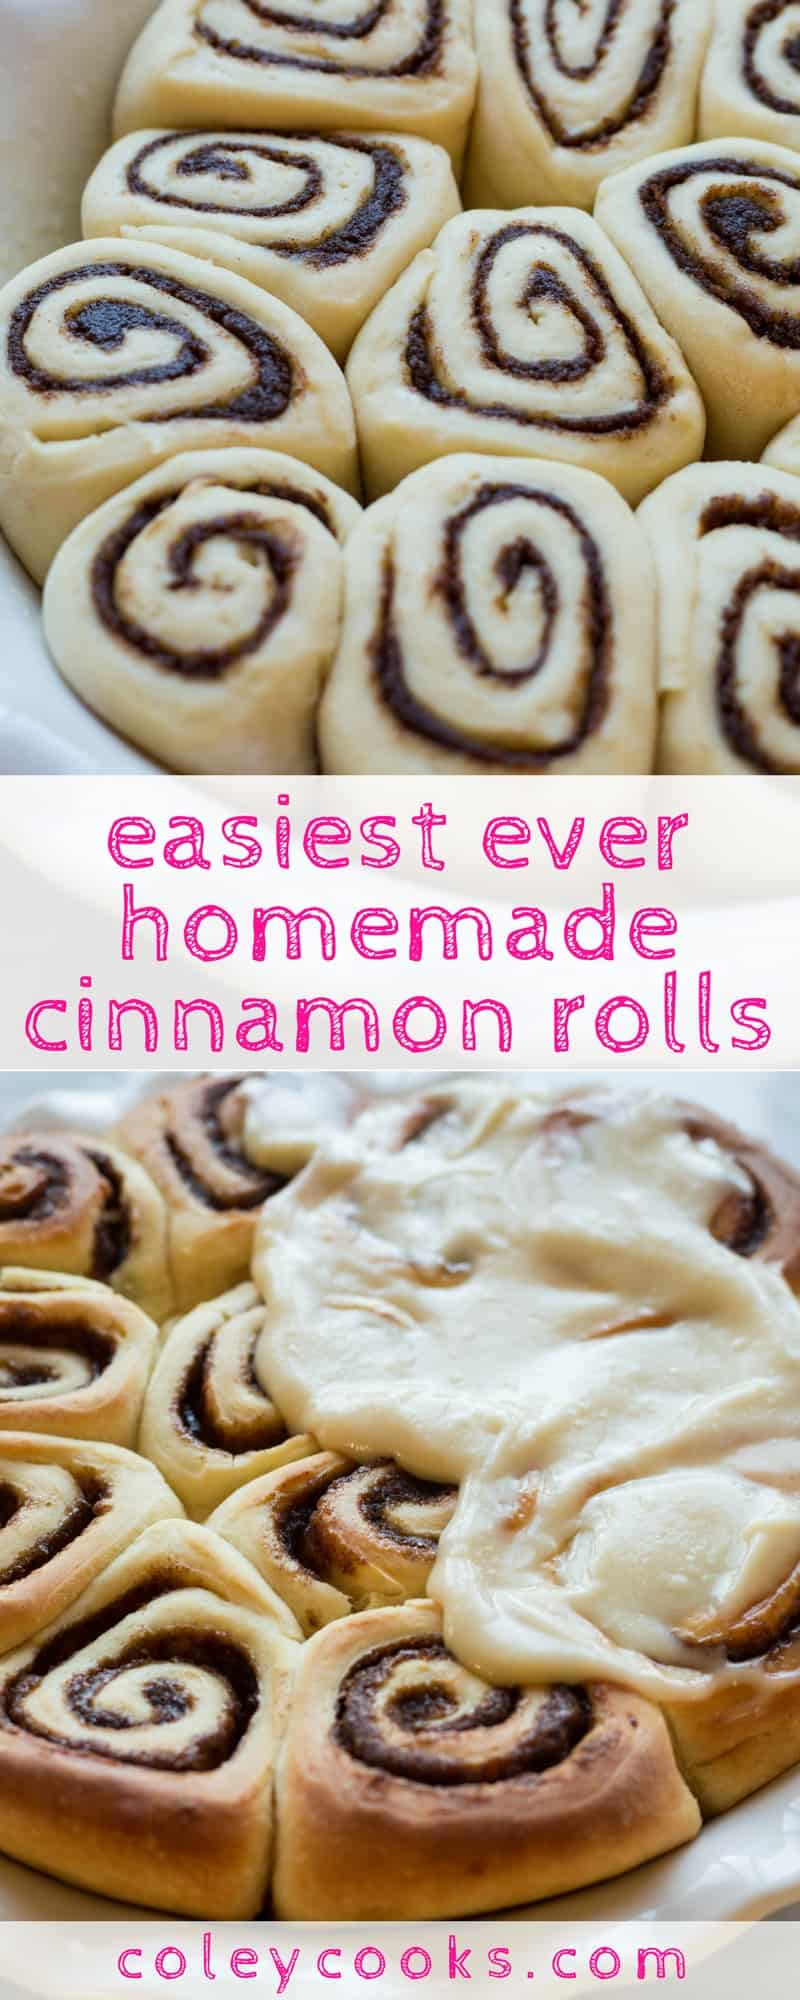 EASY CINNAMON ROLLS | The best easy recipe for homemade yeasted cinnamon buns with cream cheese frosting! This awesome breakfast : brunch recipe is on the table in 2 hours flat! | ColeyCooks.com